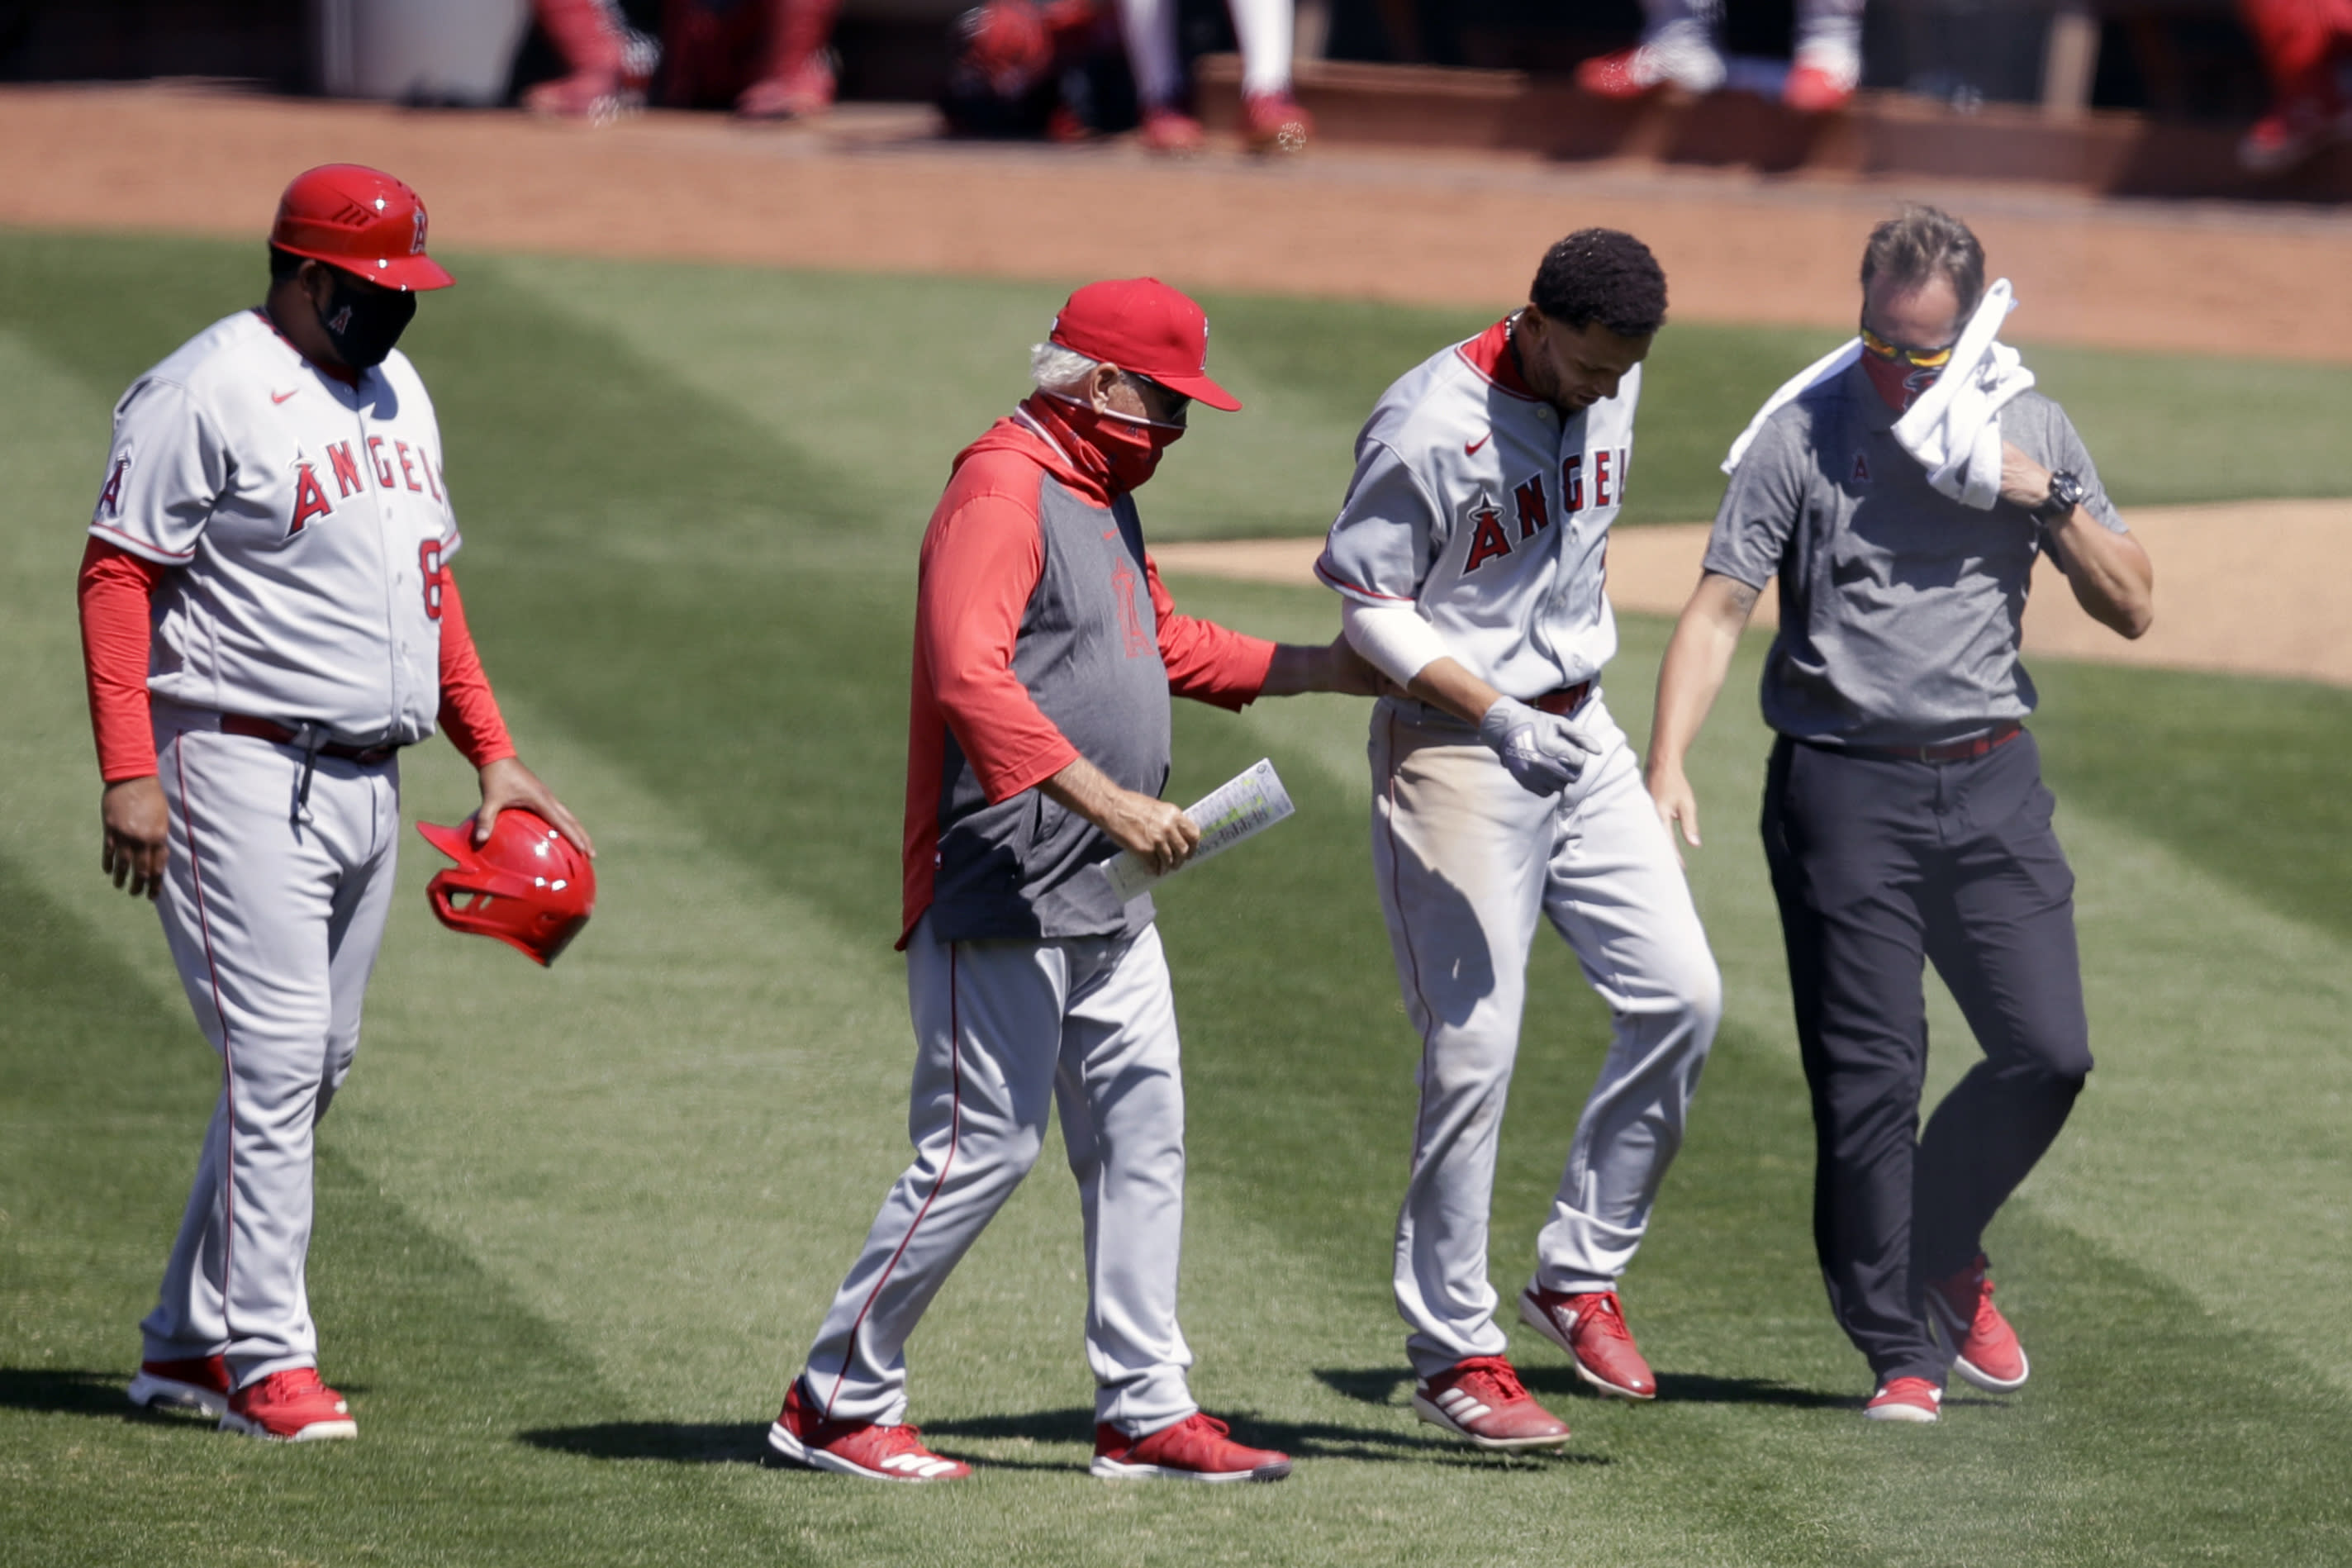 Los Angeles Angels' Andrelton Simmons, second from right, is helped off the field by manager Joe Maddon, second from left, after an injury during the ninth inning of a baseball game against the Oakland Athletics, Monday, July 27, 2020, in Oakland, Calif. (AP Photo/Ben Margot)